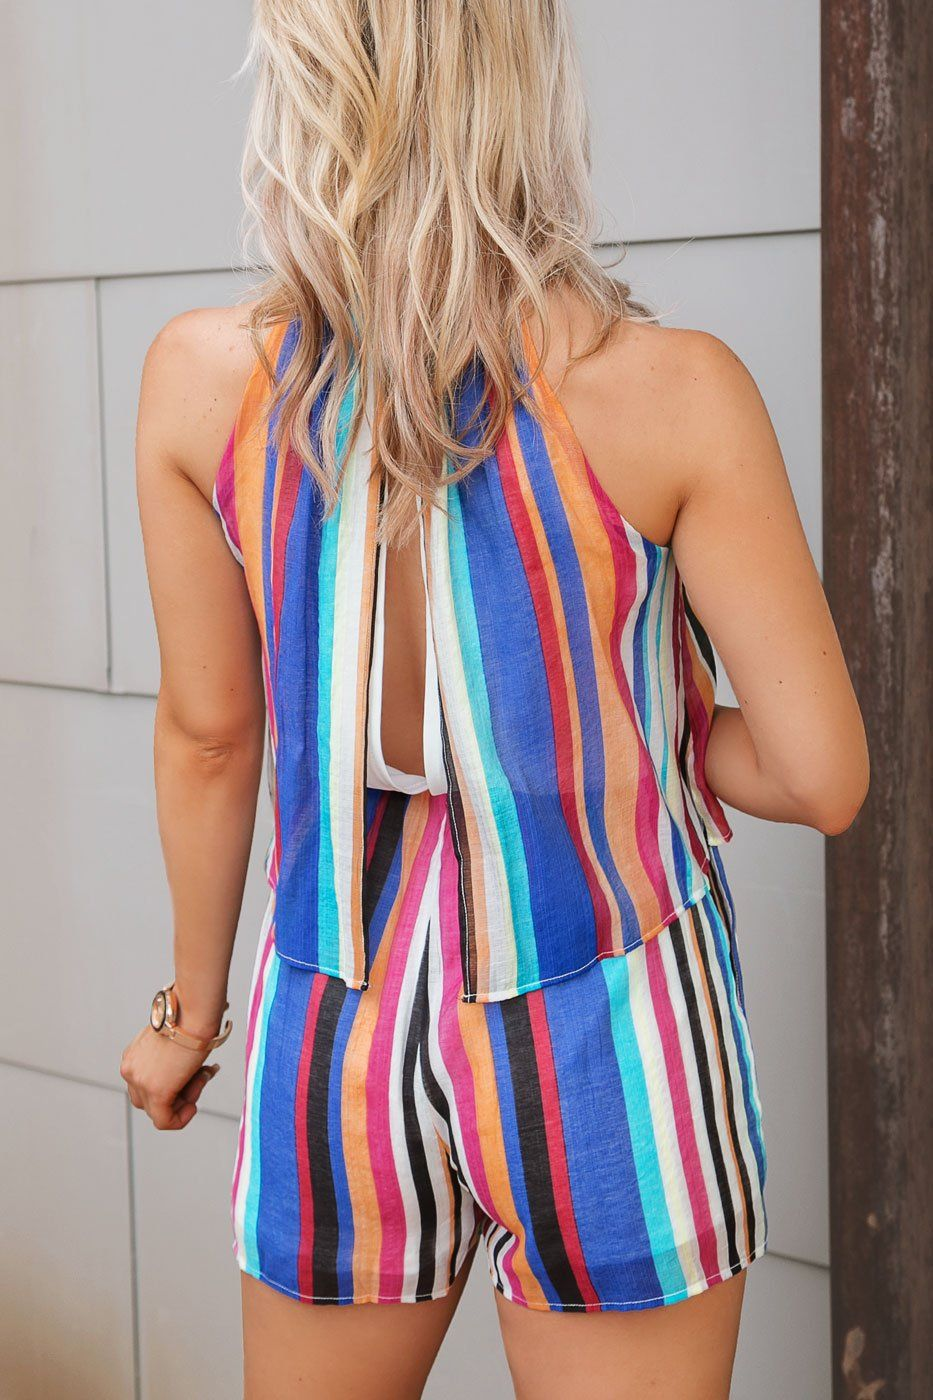 Colorful Striped Romper with Open Back